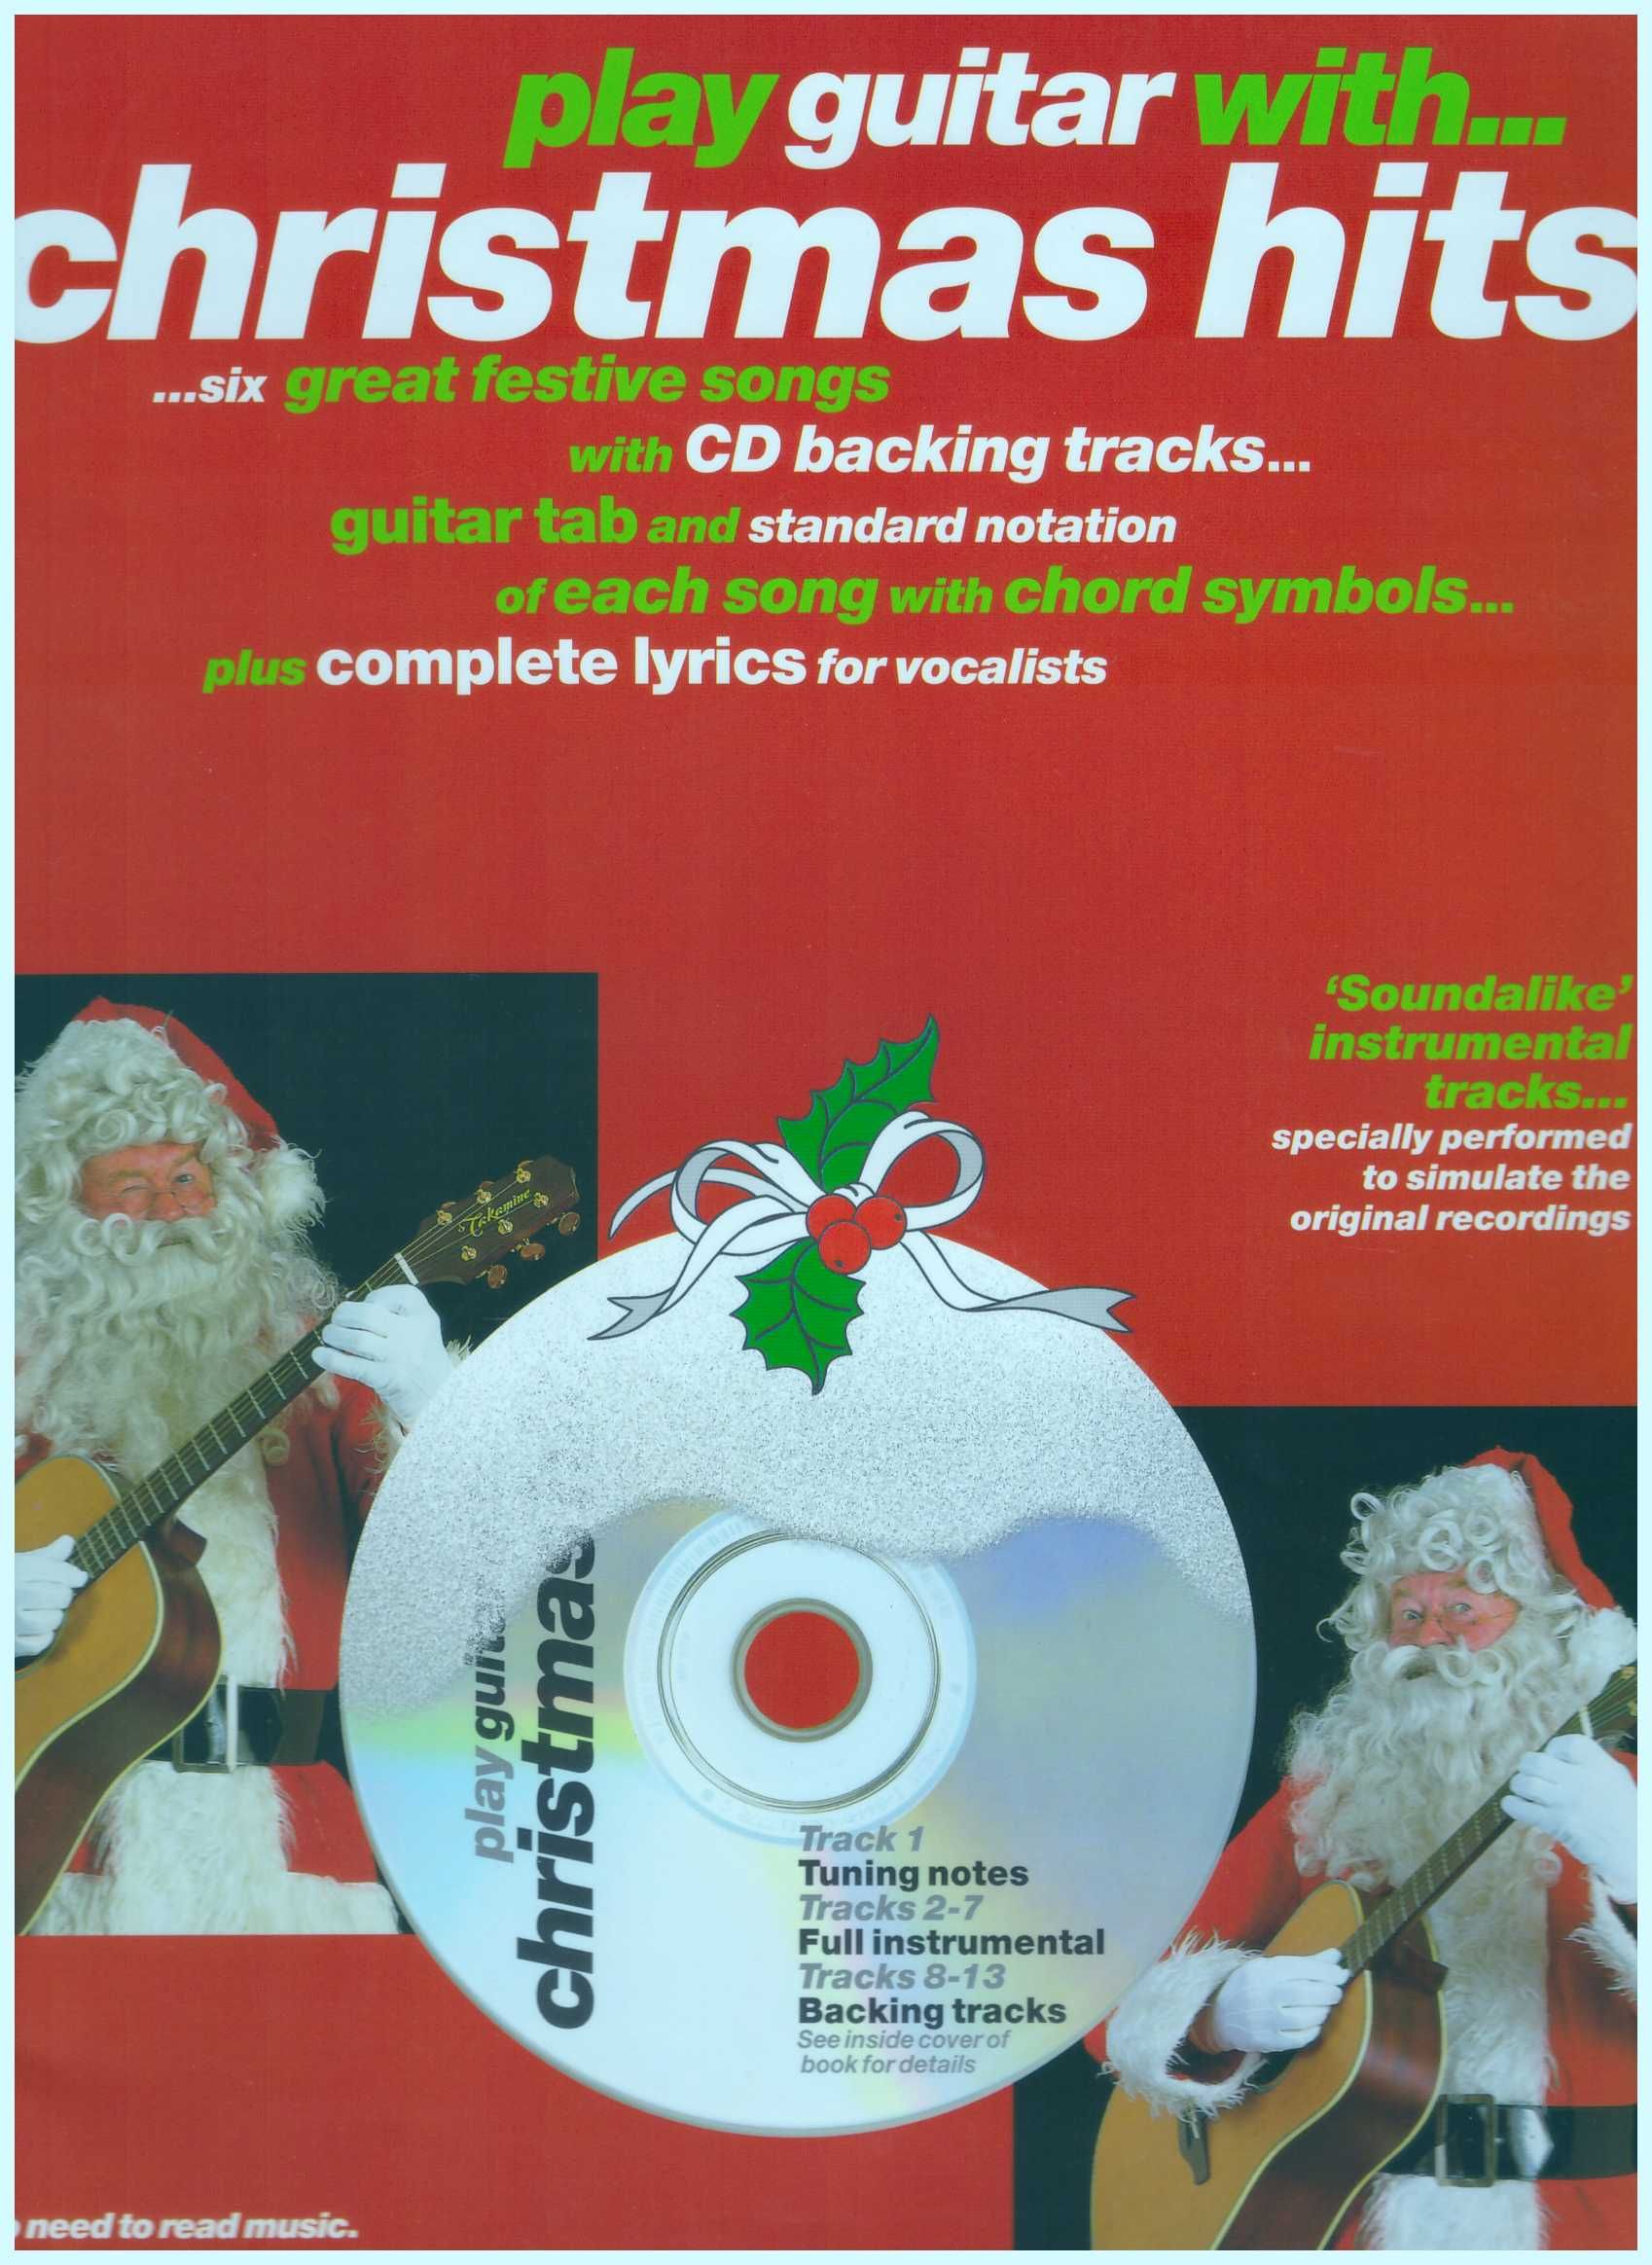 Play Guitar With...Christmas Hits / Vocal Book / Guitar Book / Gitar Book / Tab Book / Guitar Tab Book